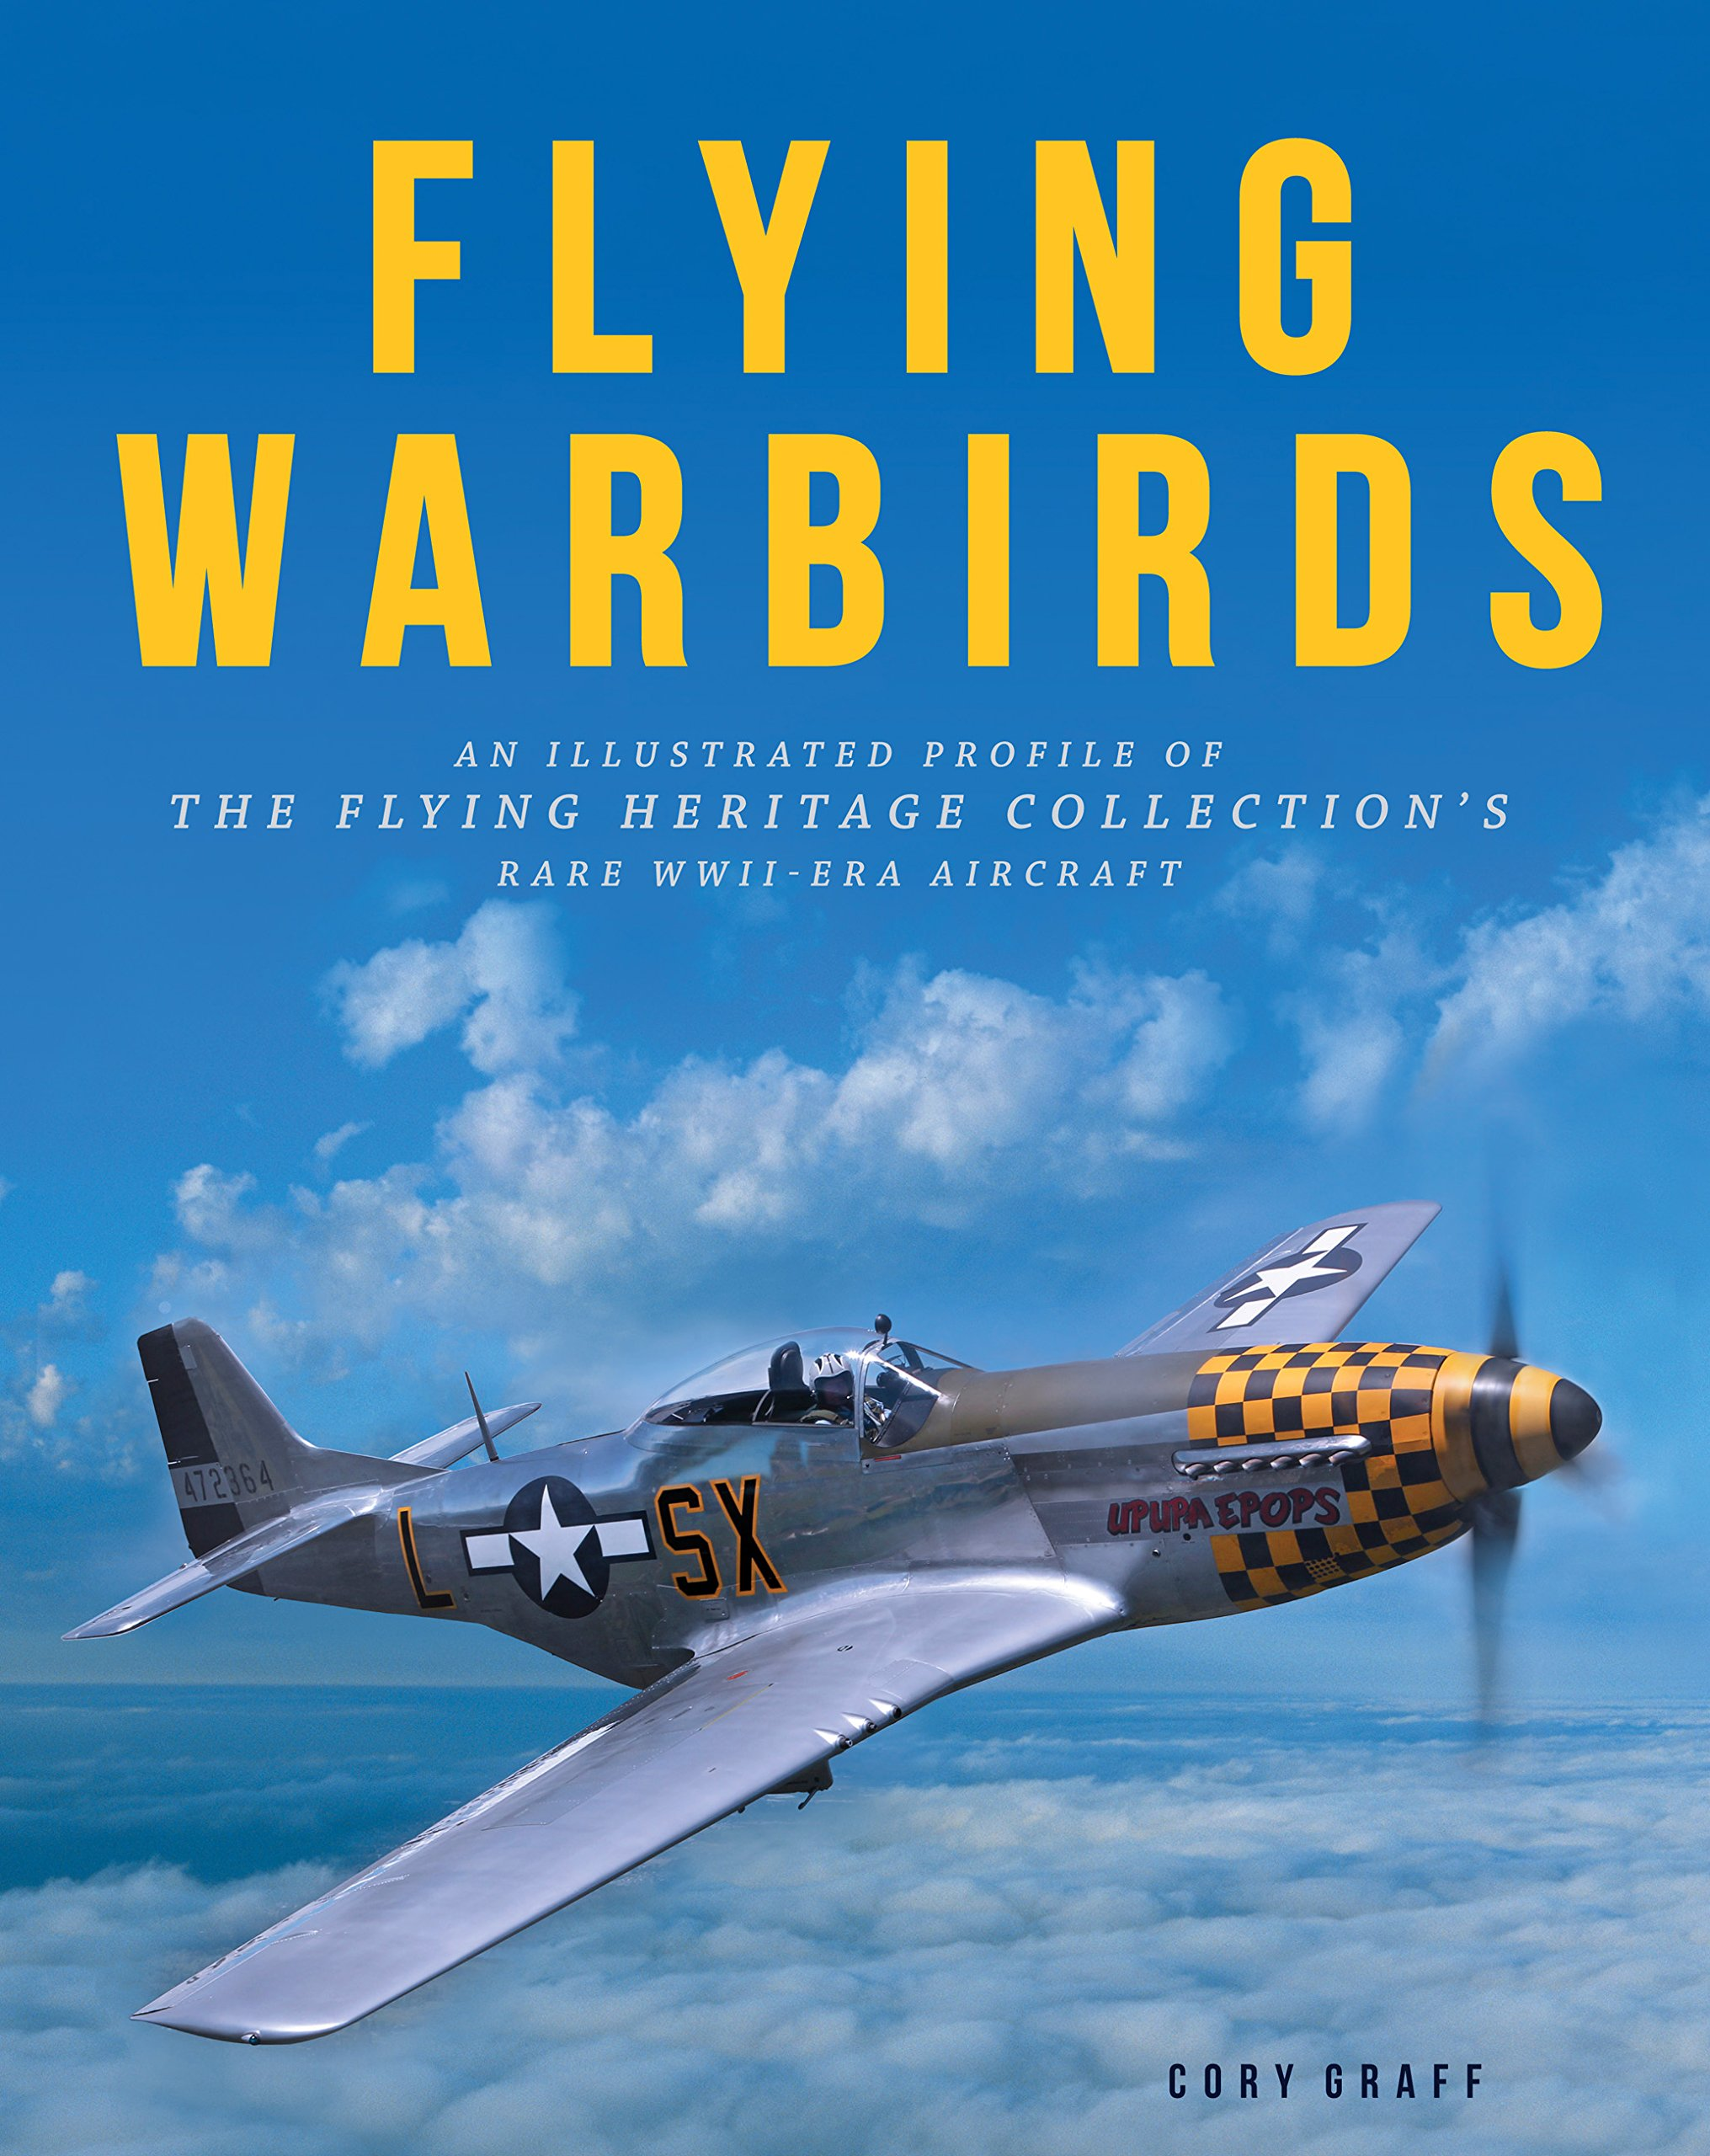 Flying Warbirds: An Illustrated Profile of the Flying Heritage